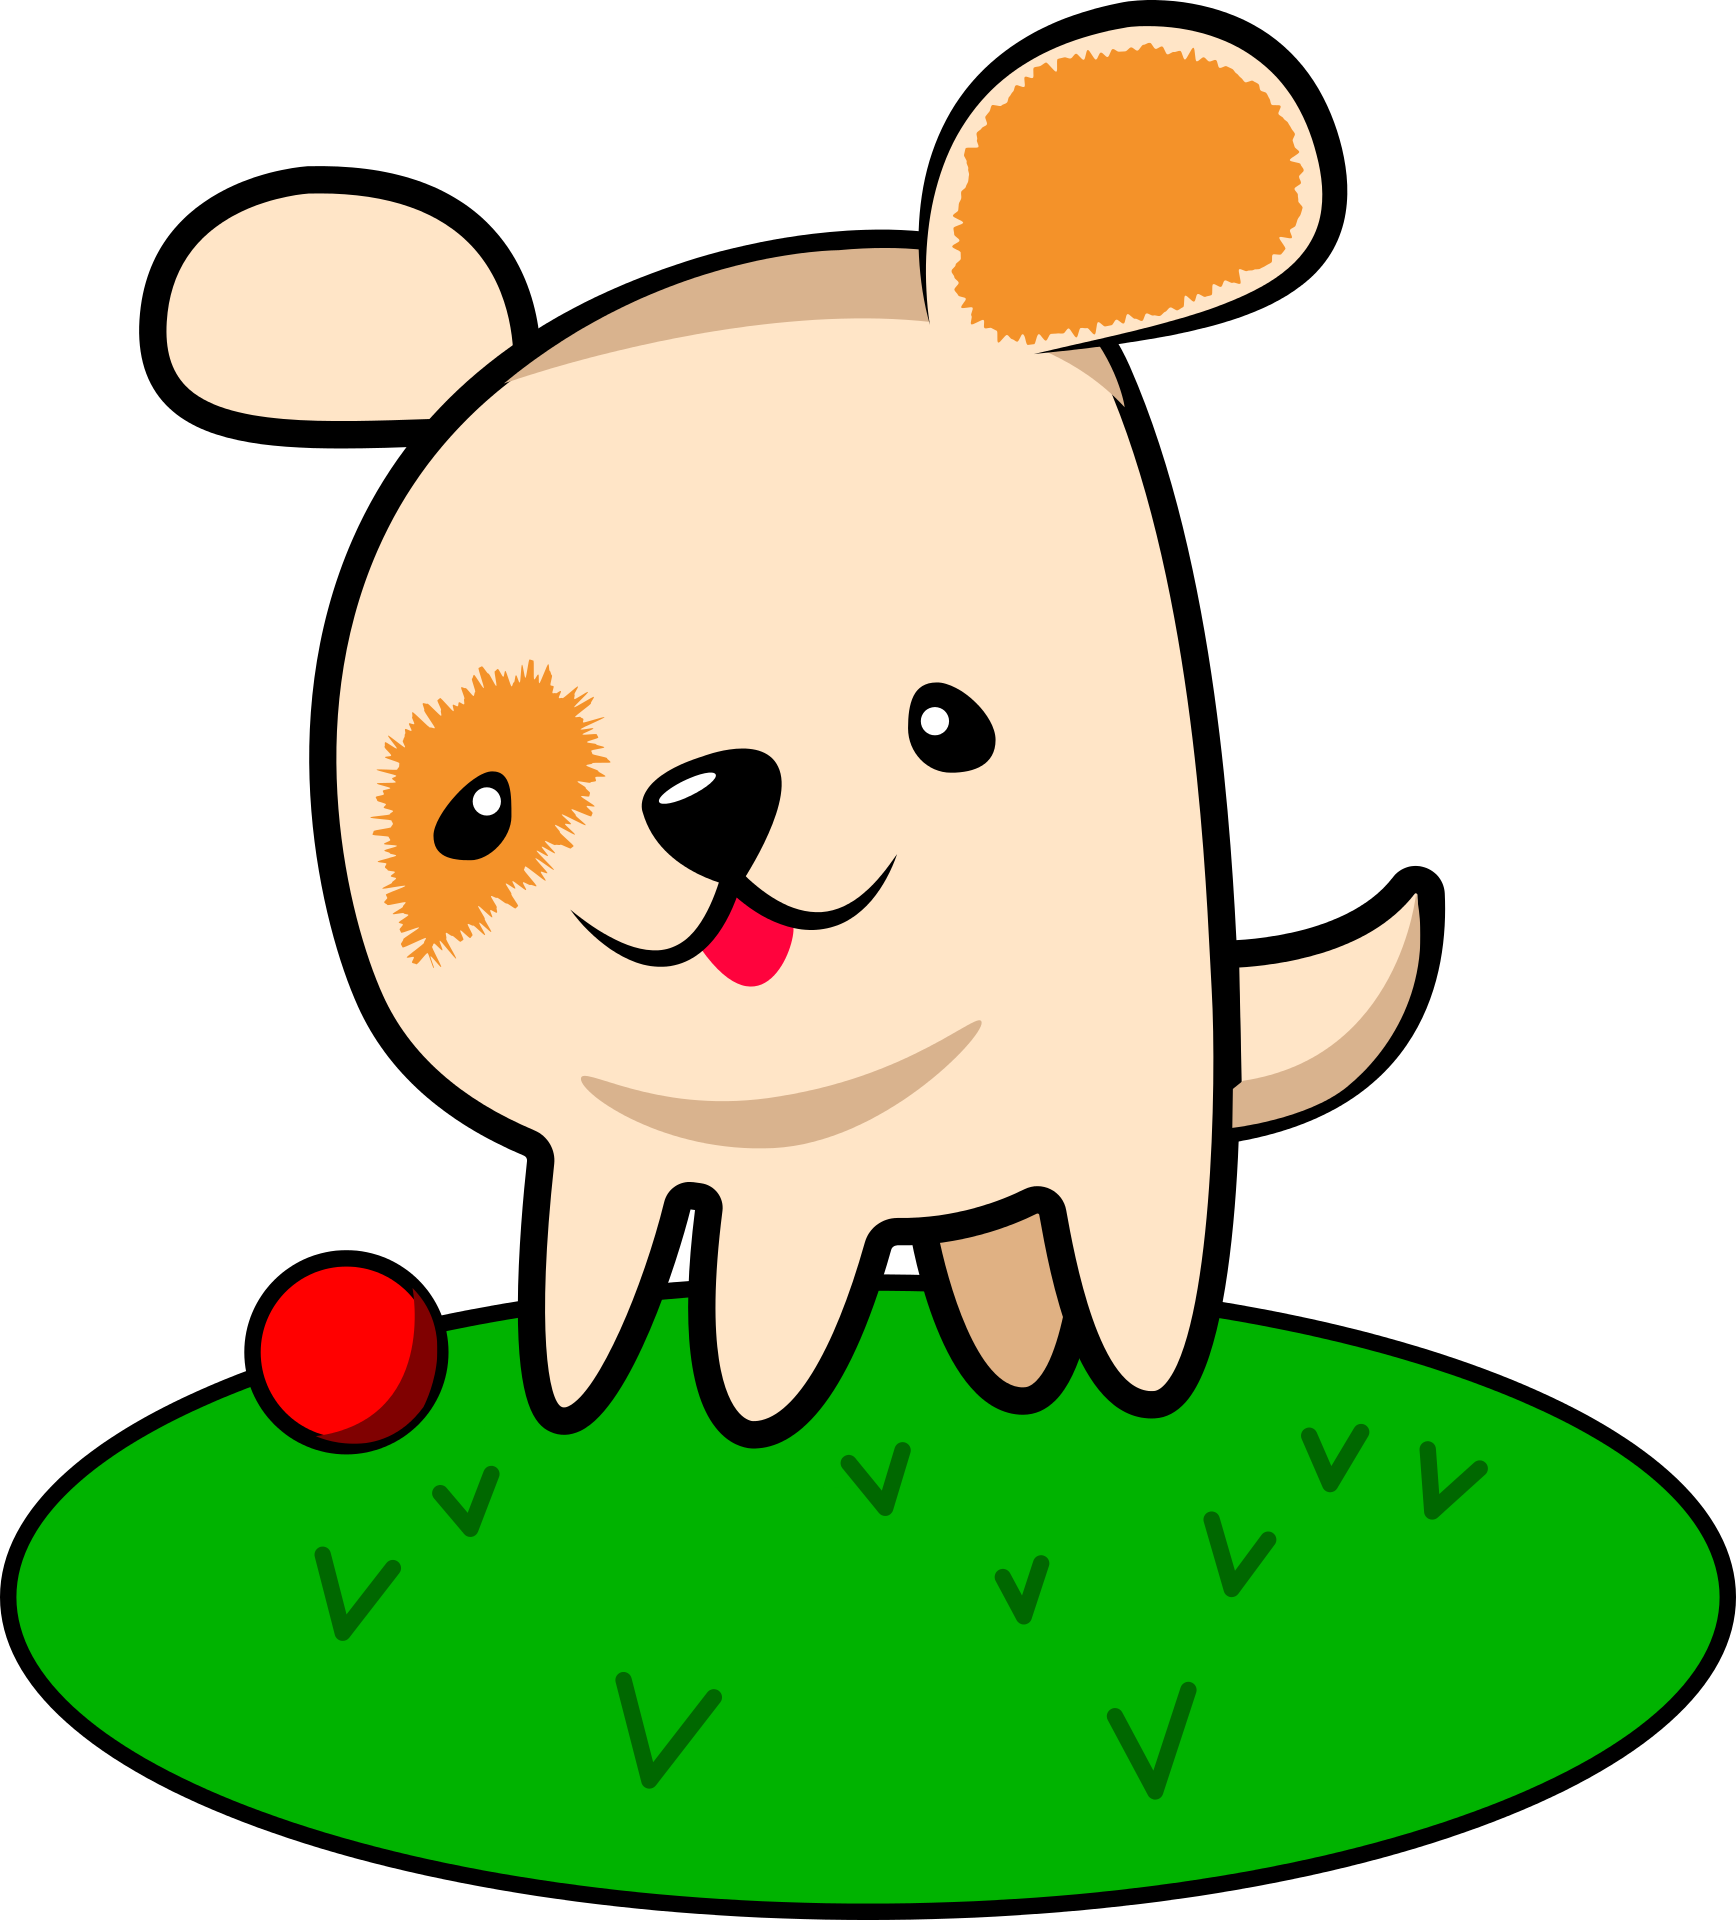 Dog clipart cny, Dog cny Transparent FREE for download on.